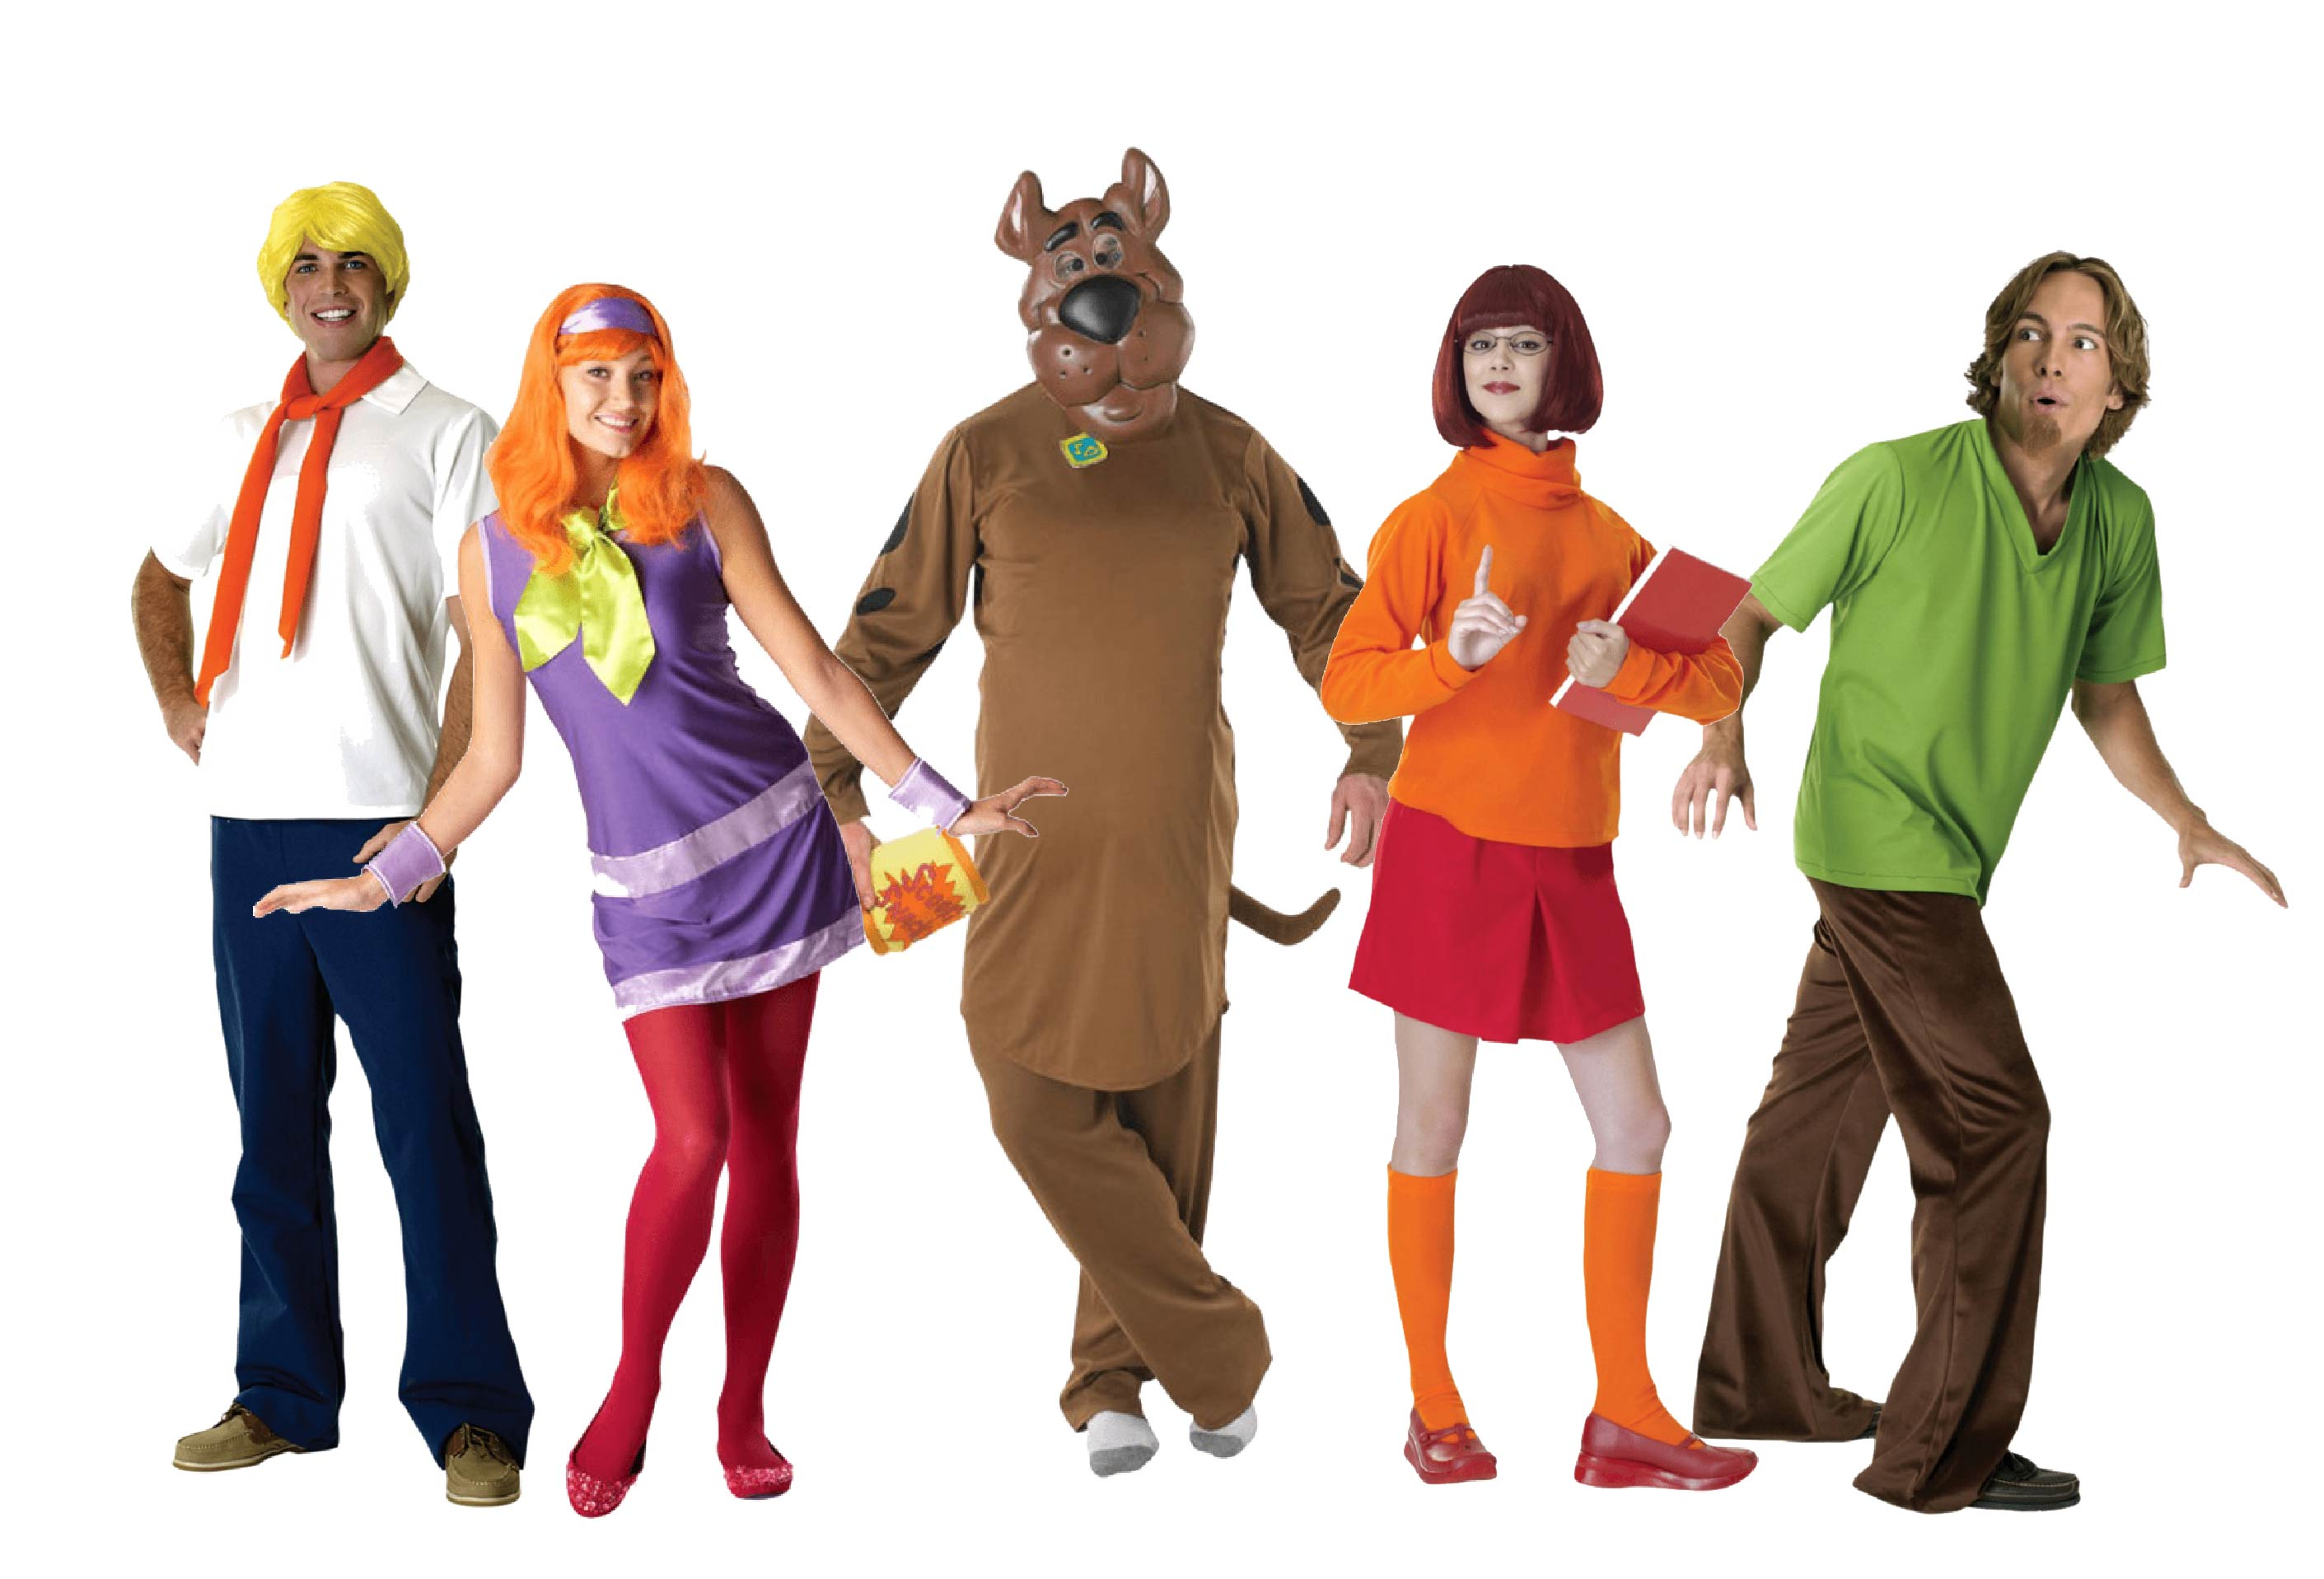 A group of people wearing Scooby Doo fancy dress including Shaggy, Daphne, Fred, Velma and Scooby.